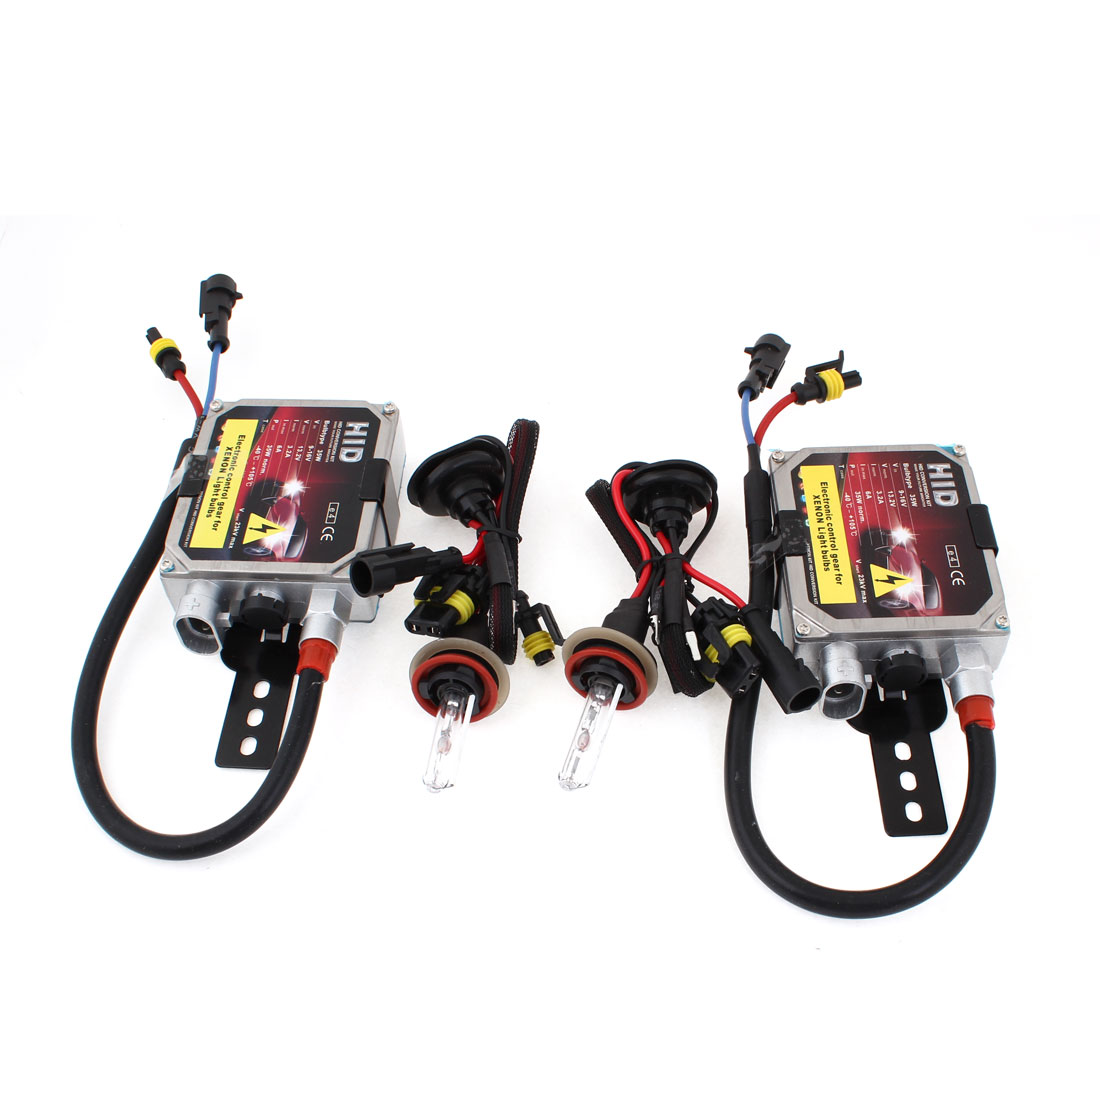 2pcs DC 12V 35W H11 6000K Car Xenon Light HID Conversion Kit w Ballast